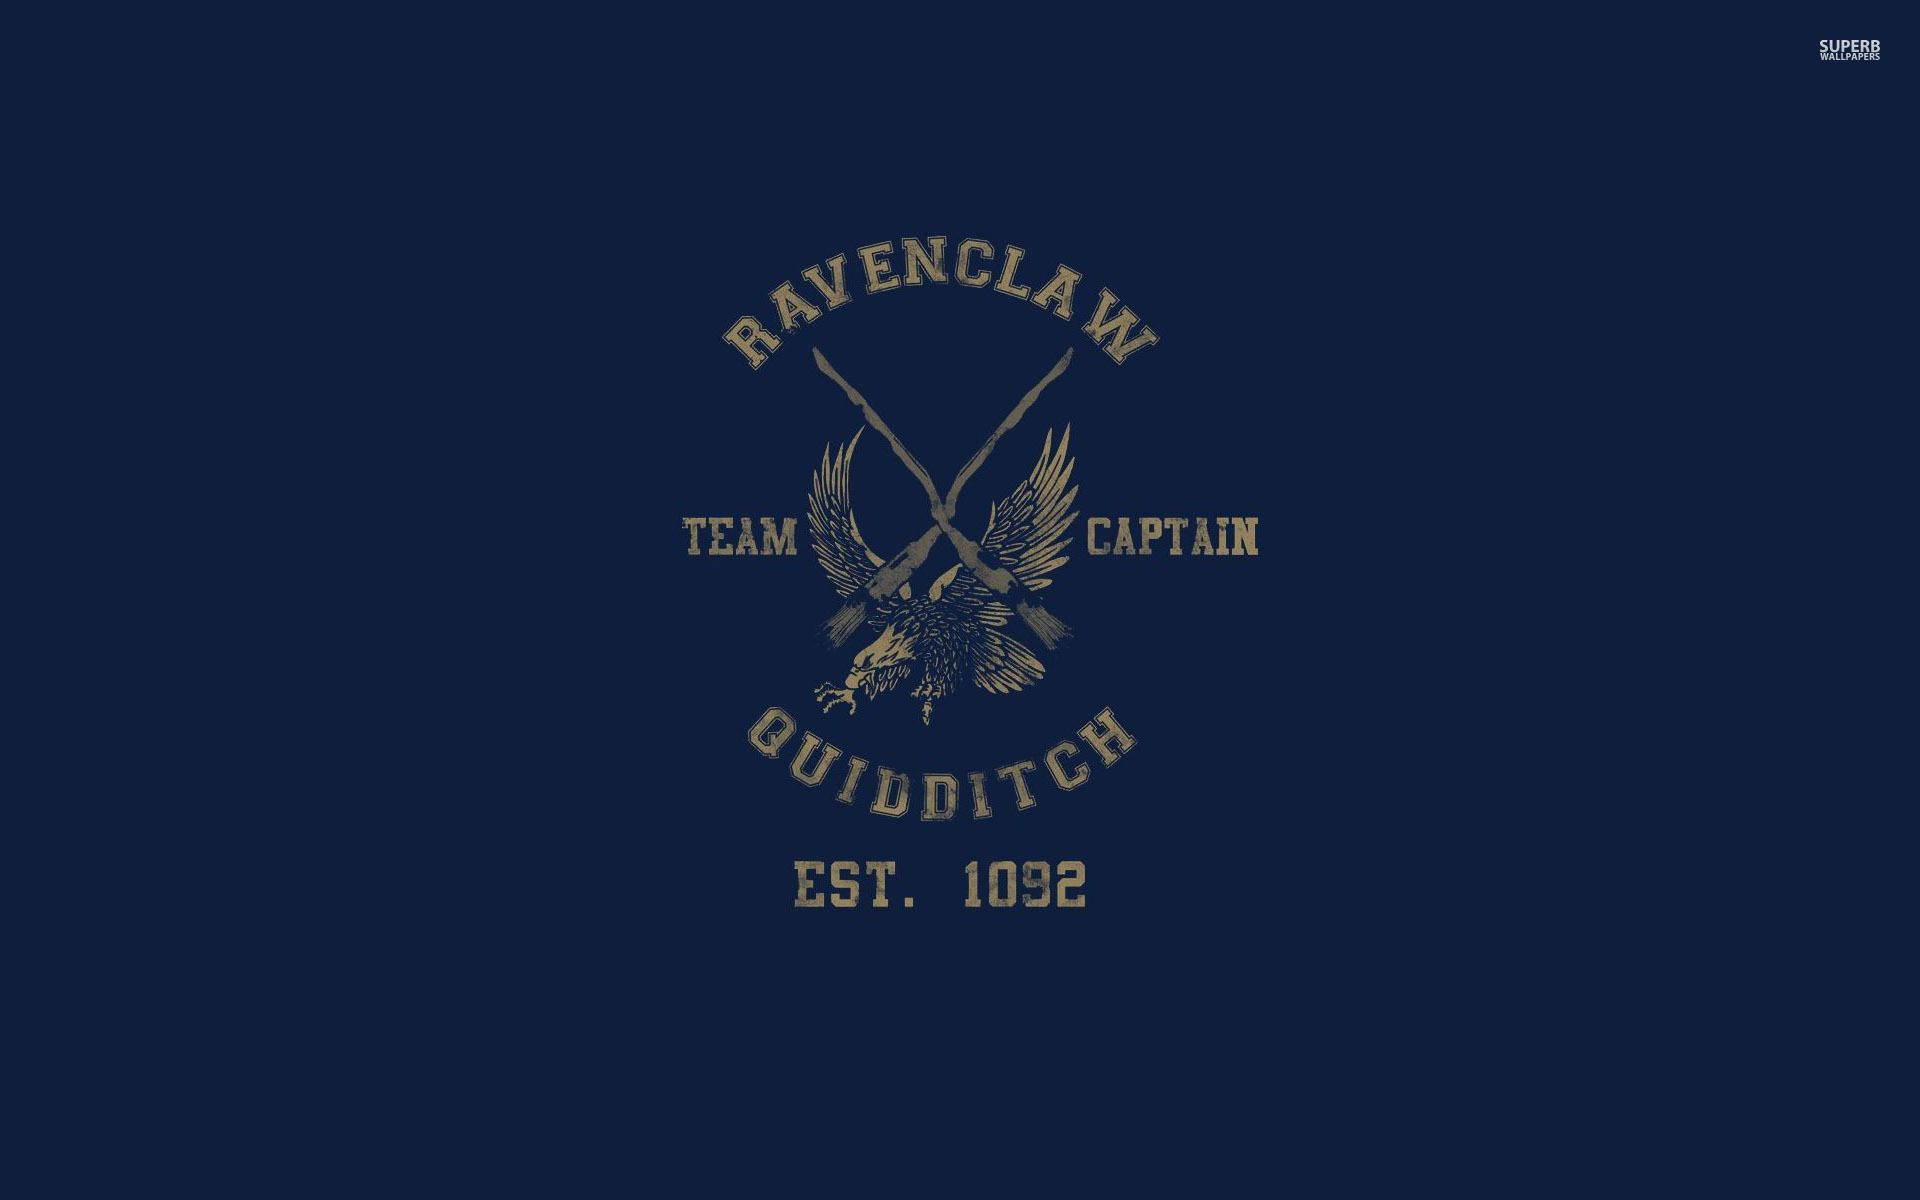 Ravenclaw Wallpapers Wallpaper Cave Wallpaper Harry Potter